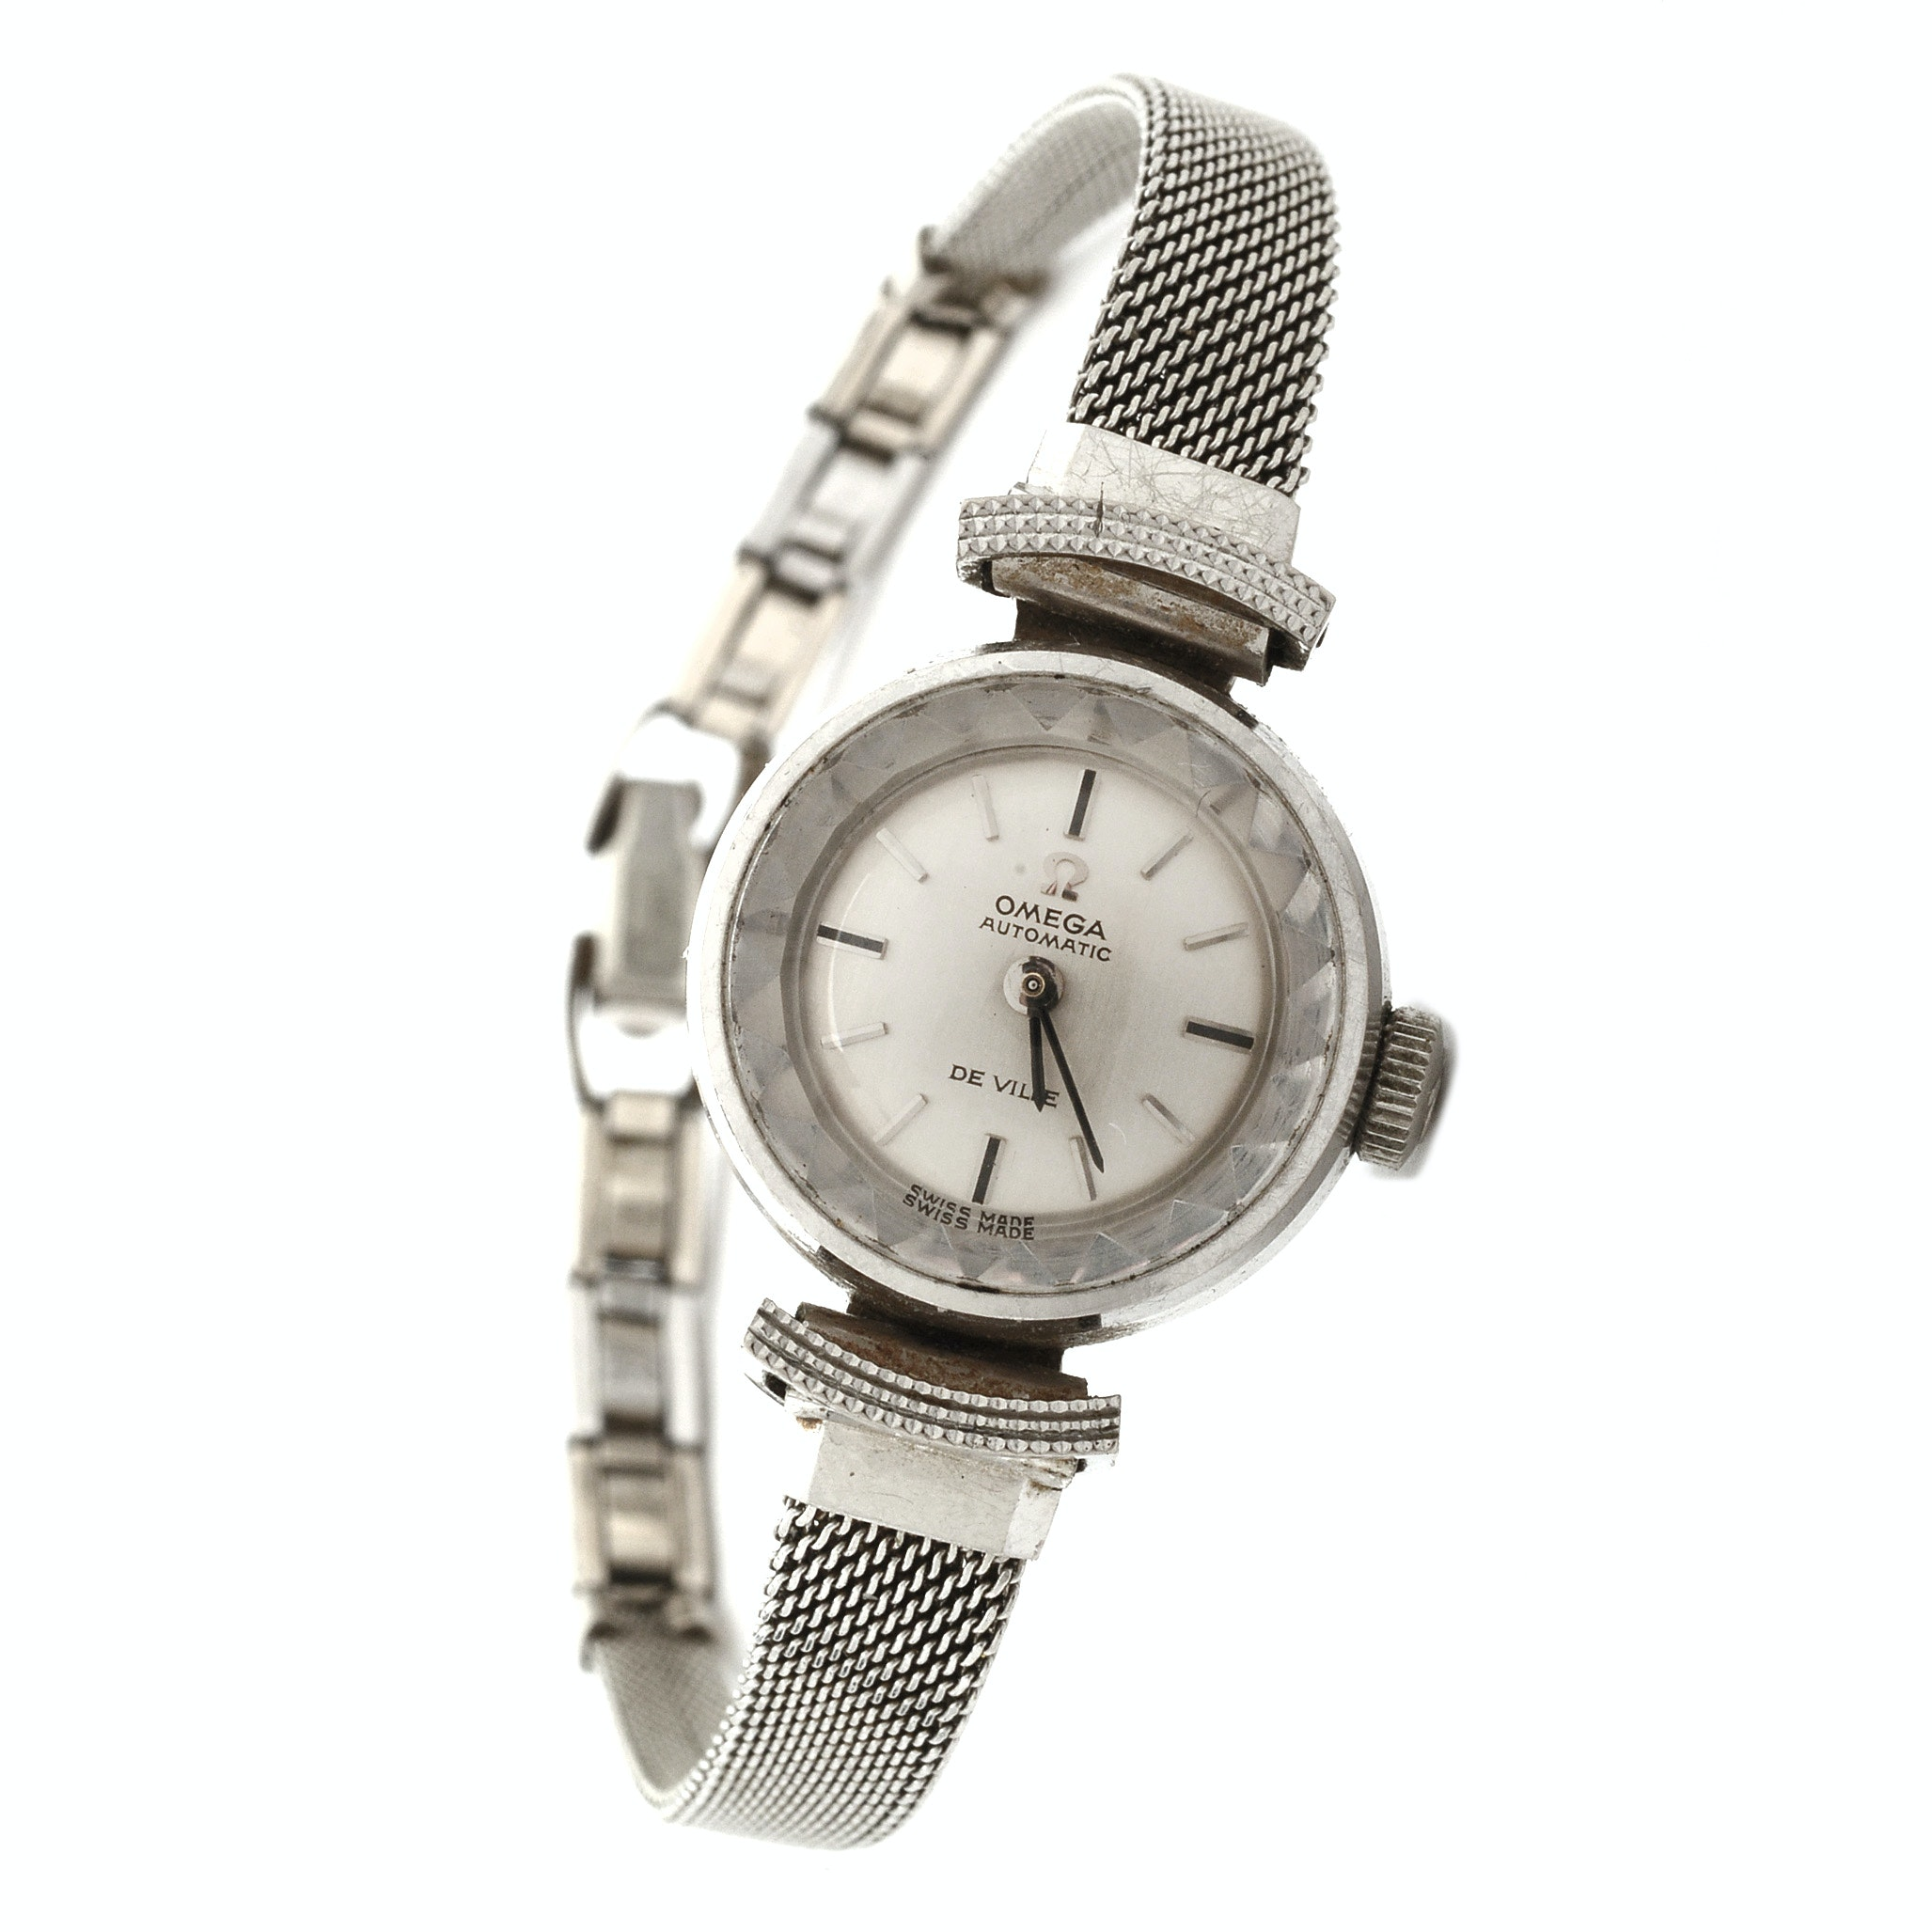 Omega Automatic De Ville Wristwatch with 18K White Gold Case